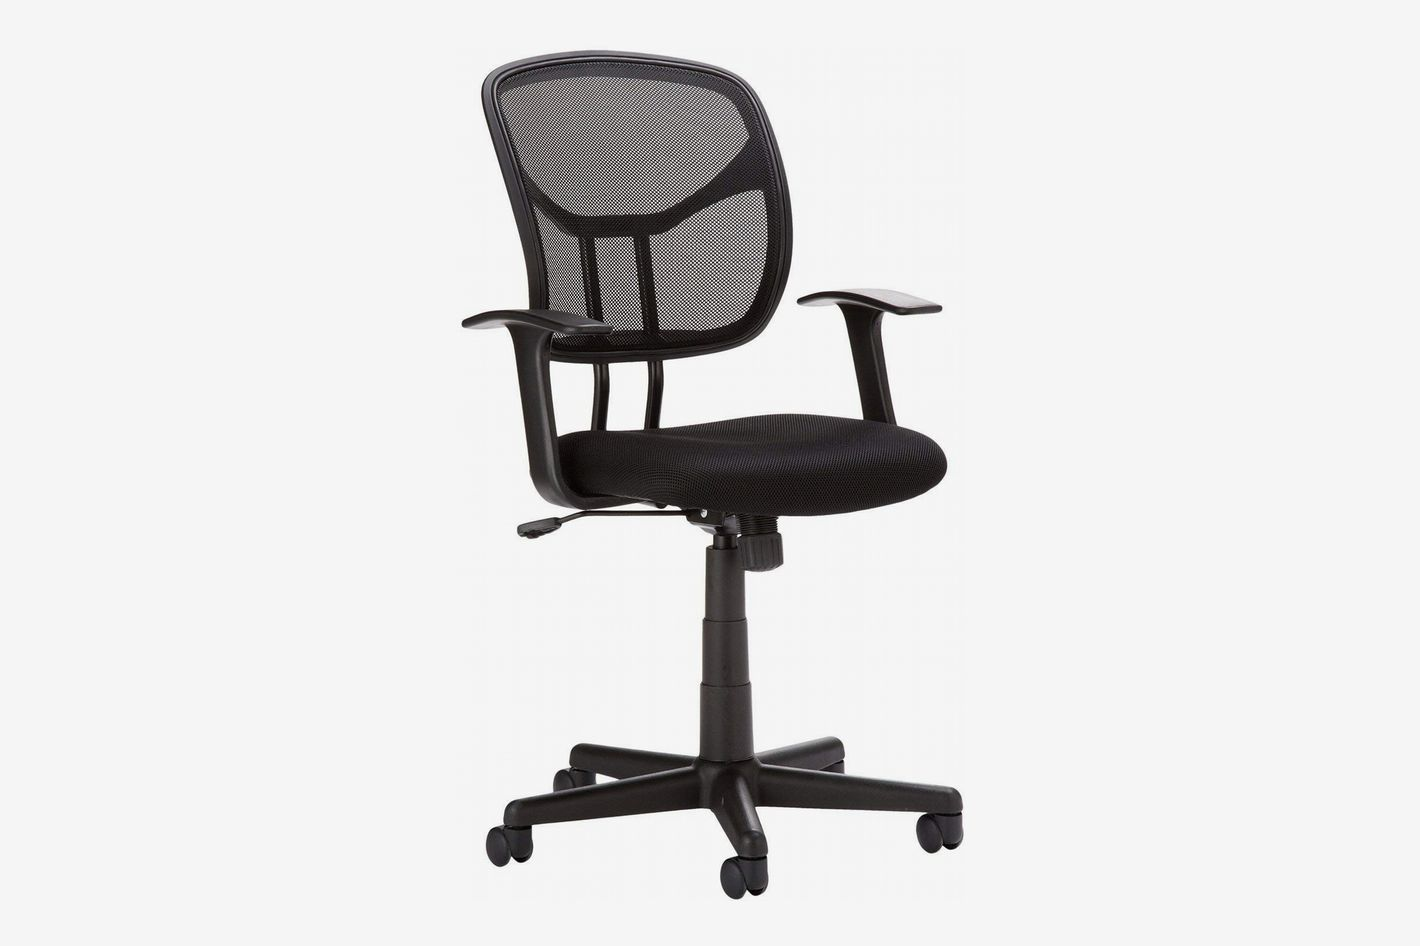 Best mid-back mesh office chair & 19 Best Office Chairs and Home-Office Chairs 2019